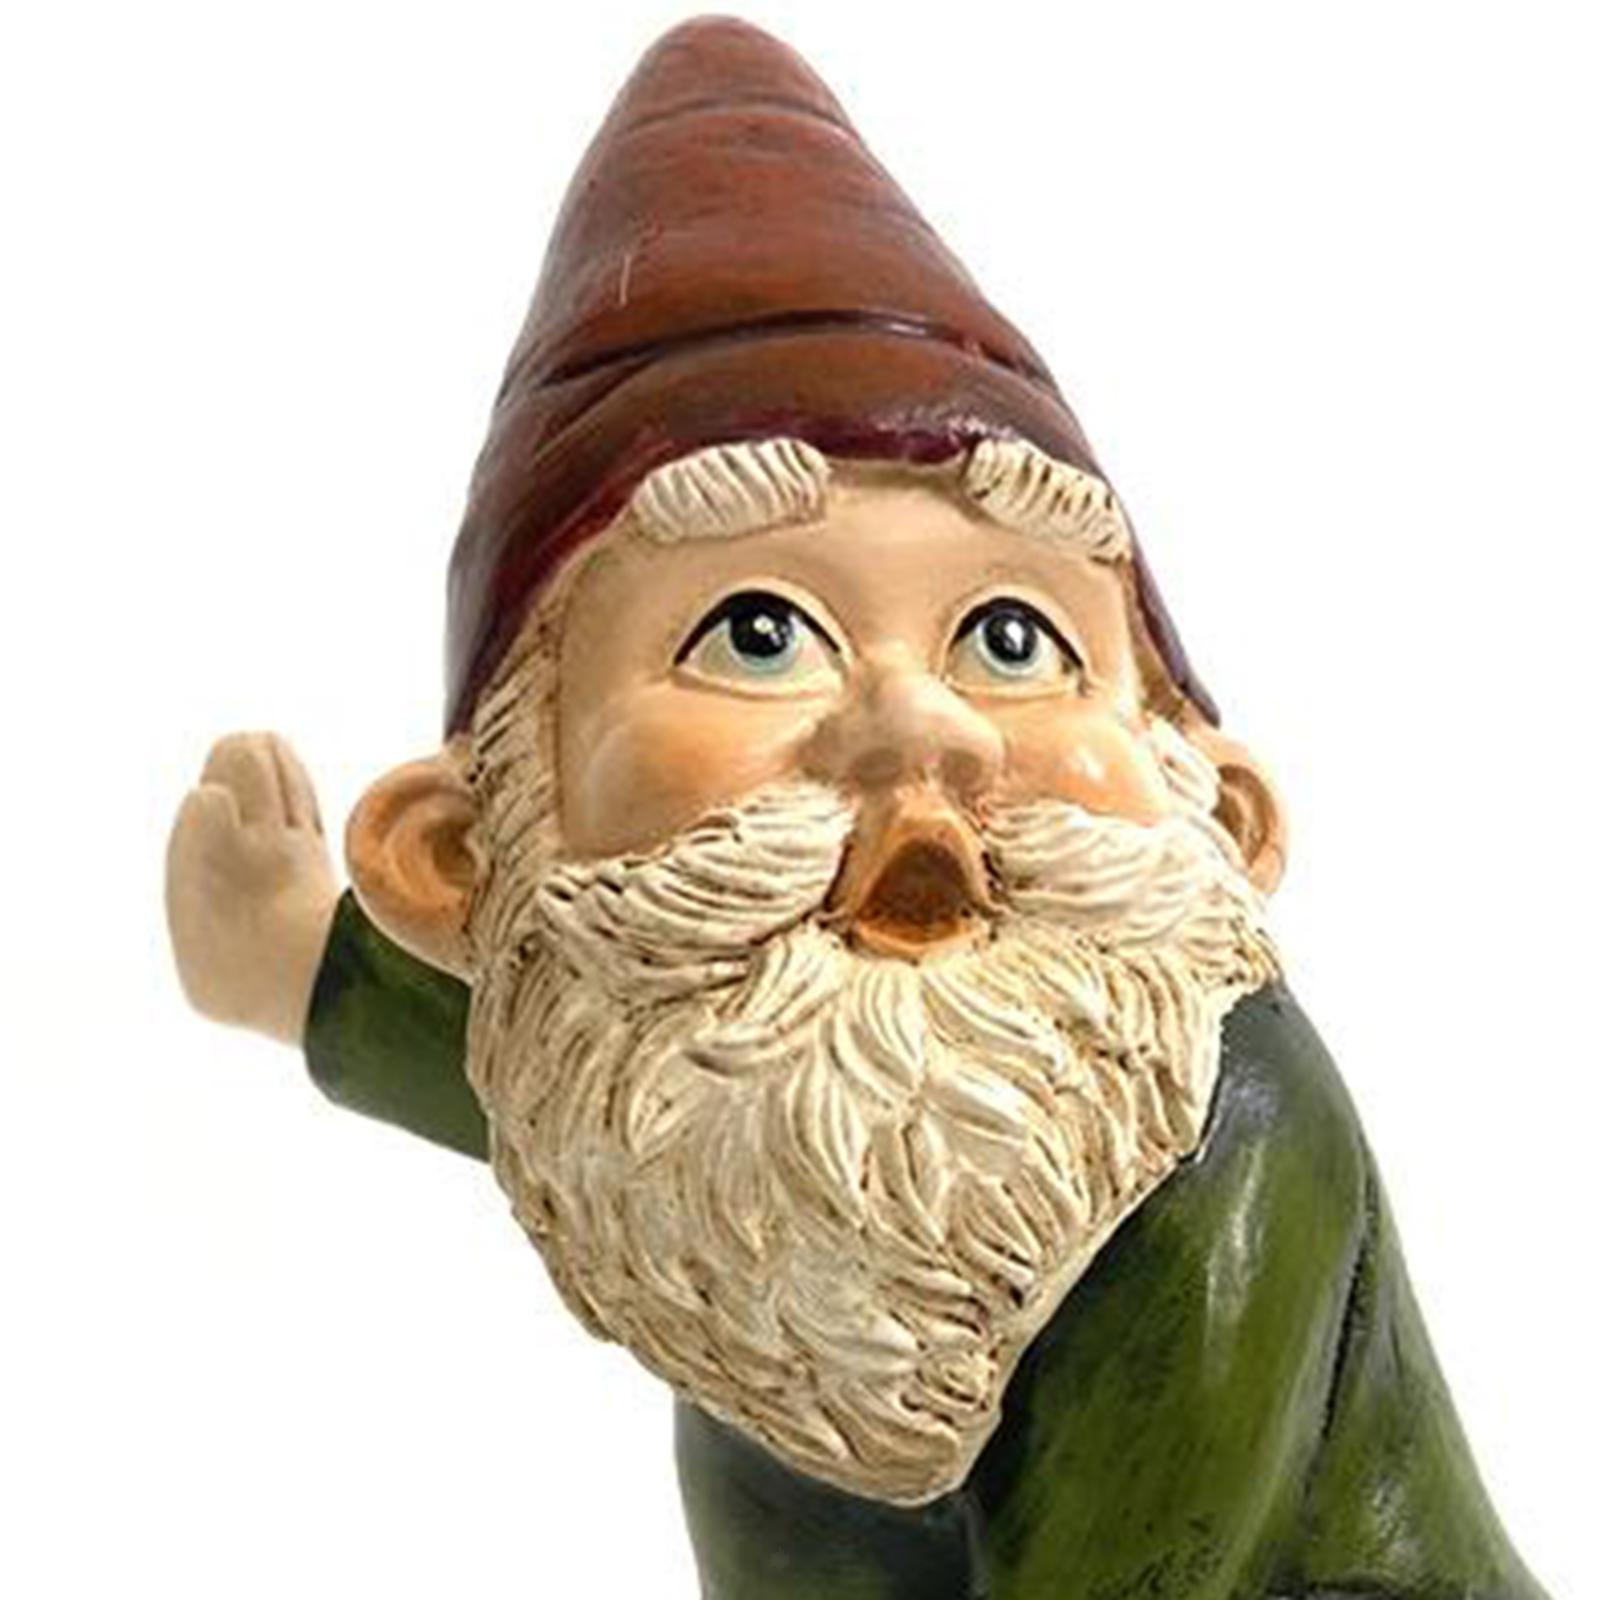 thumbnail 4 - Funny Resin Naughty Garden Gnome Statue Ornaments Villa Home Figurines